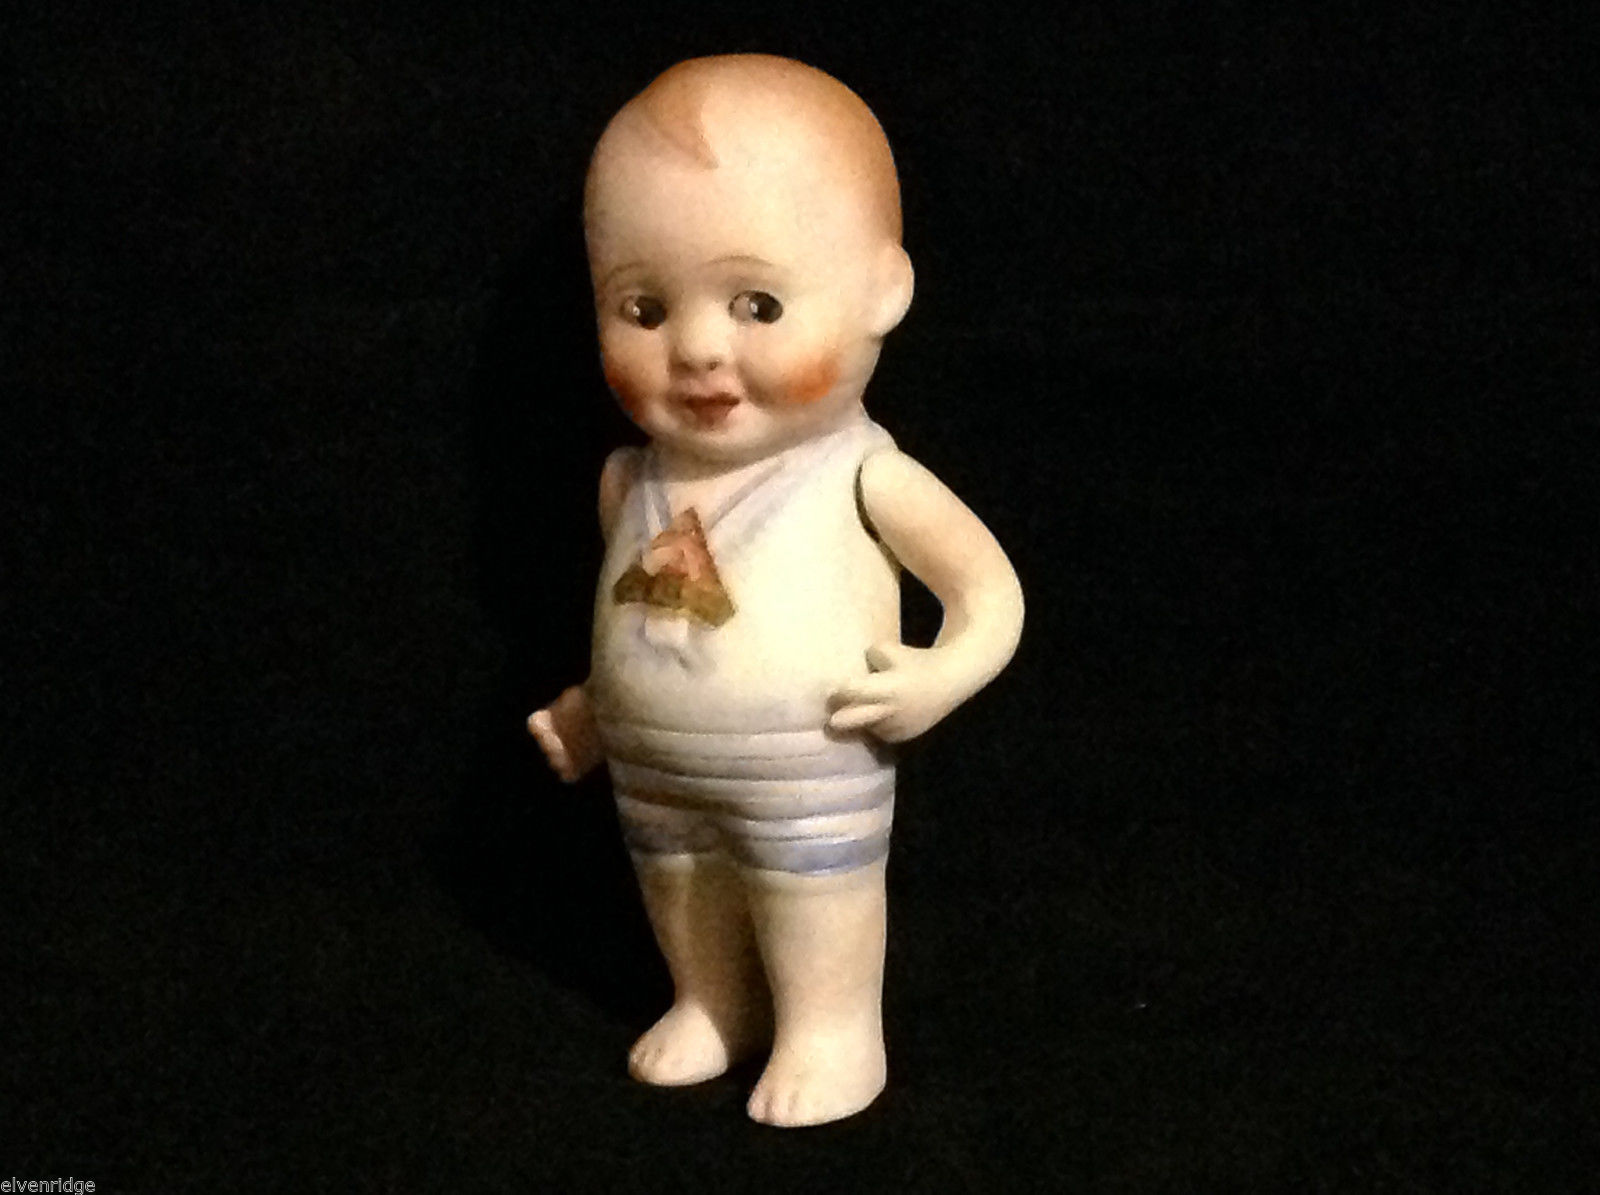 Vintage Antique Painted Ceramic Cute Standing Baby Figurine in Sailor Outfit